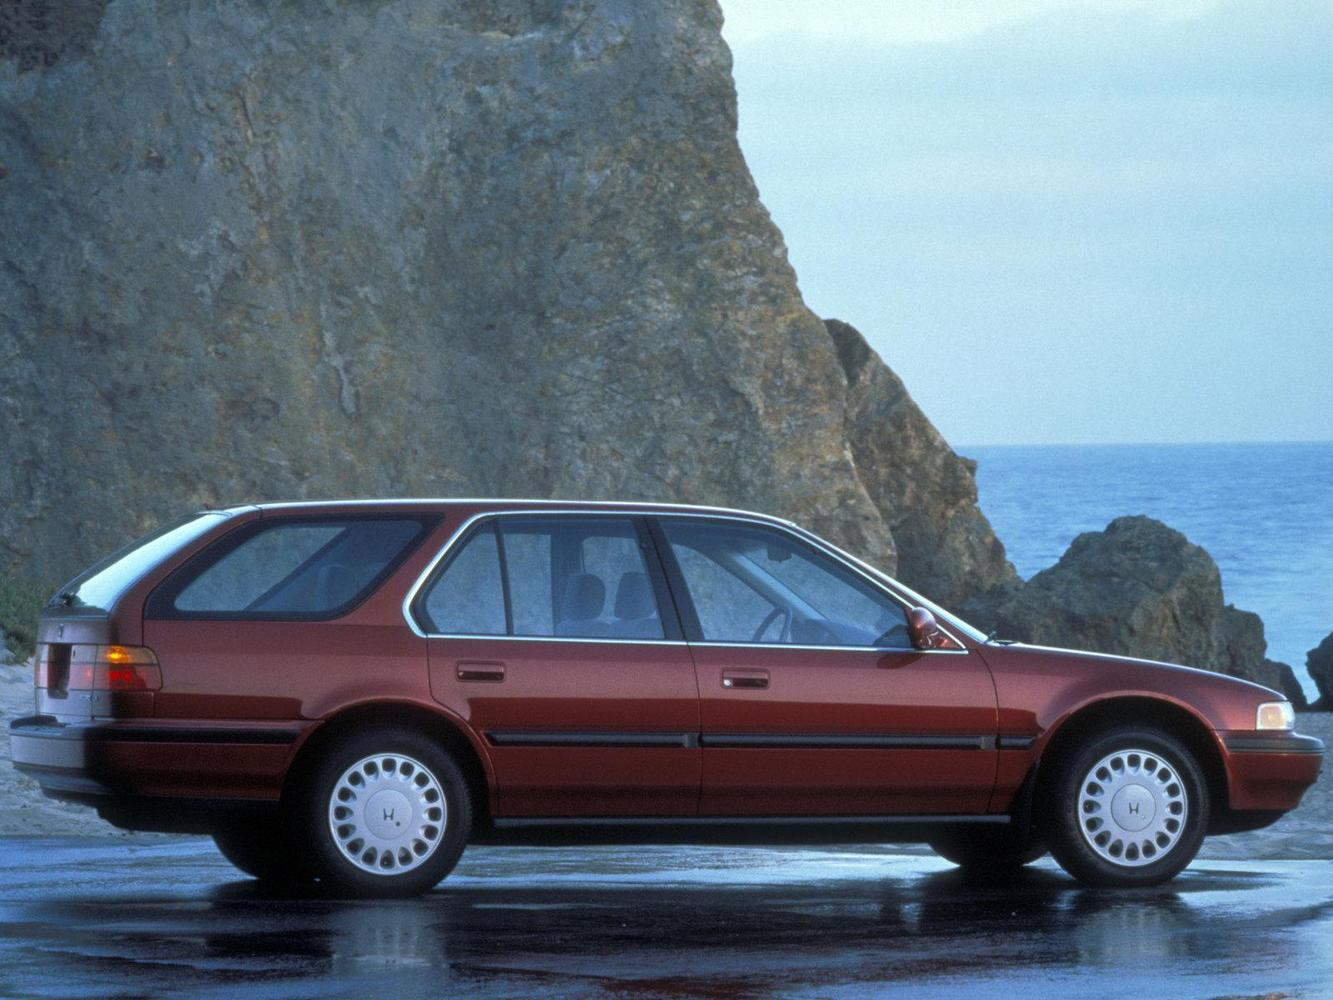 универсал WAGON Honda Accord 1990 - 1993г выпуска модификация 2.2 AT (140 л.с.)